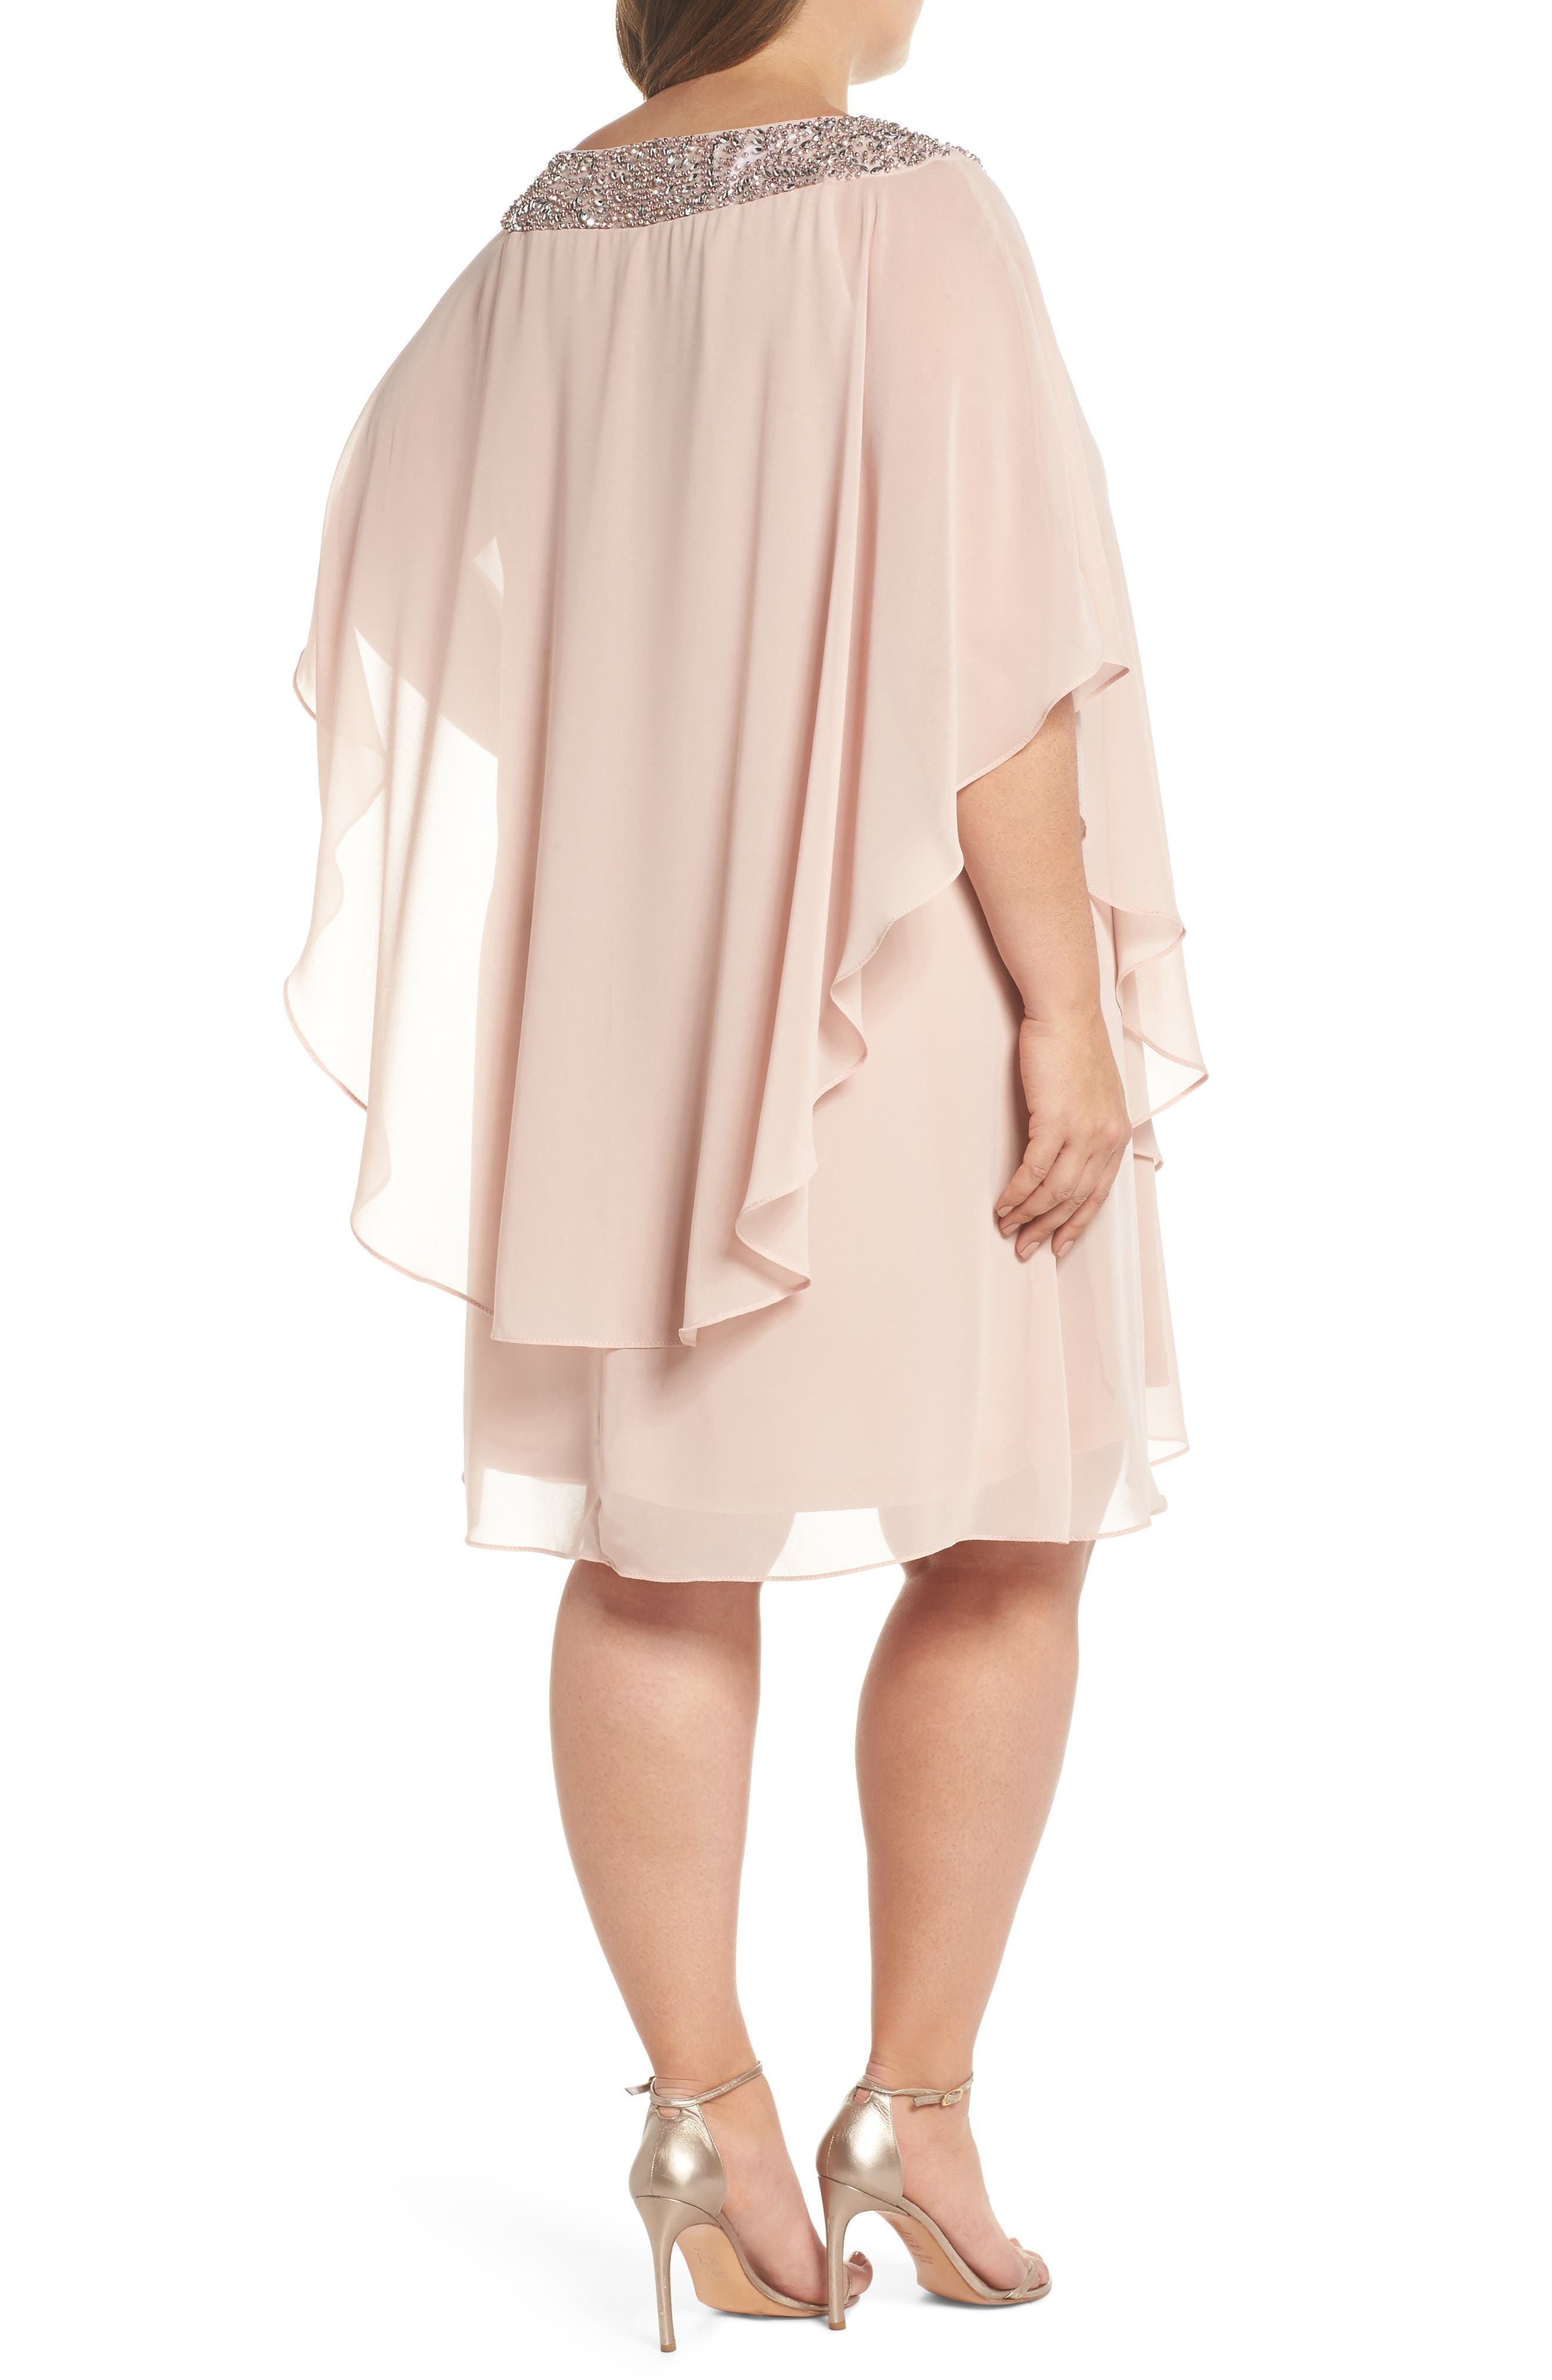 Beaded Neck Chiffon Overlay Dress,                             Alternate thumbnail 2, color,                             Blush/ Silver